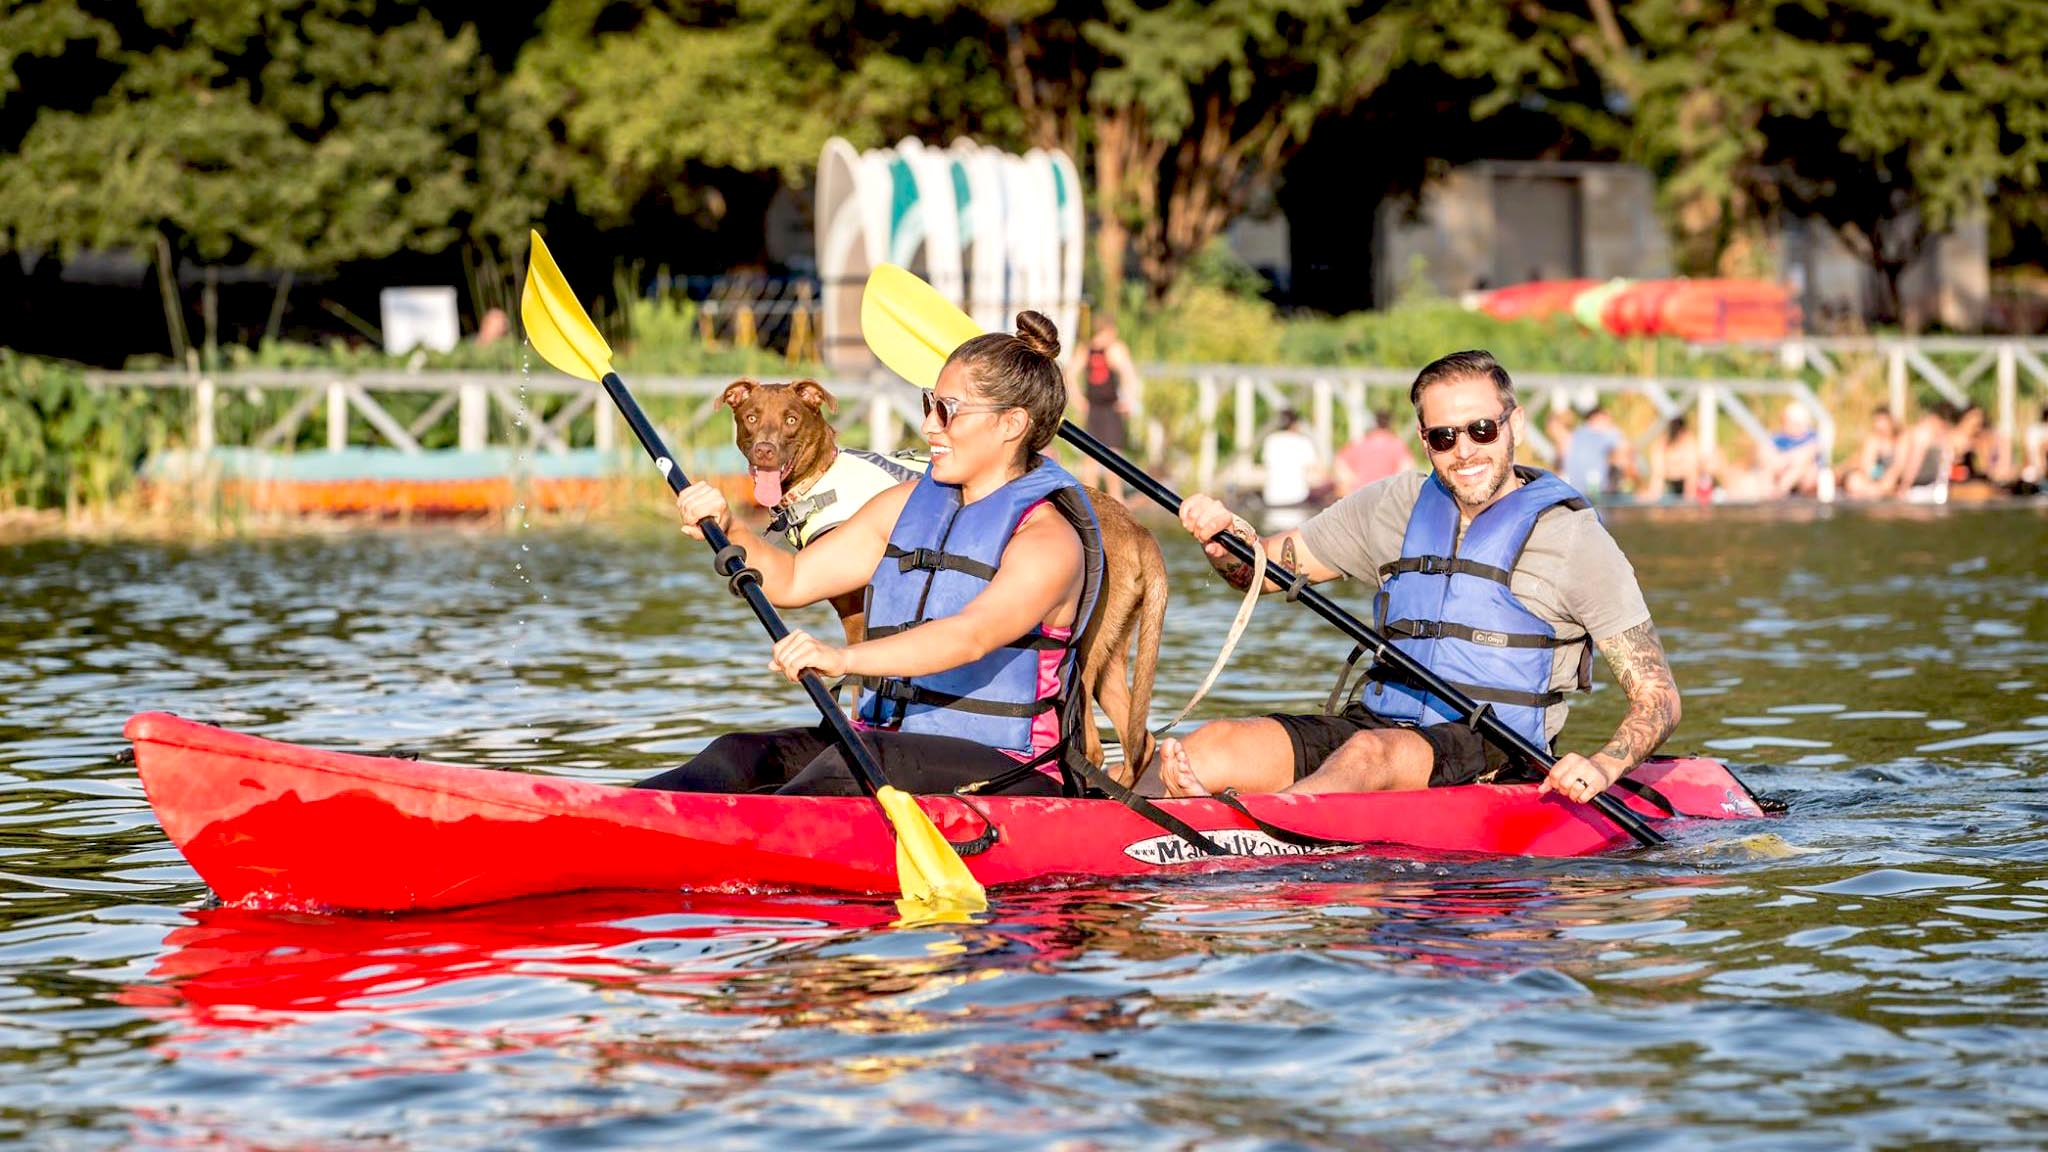 Image of Congress Avenue Kayaks